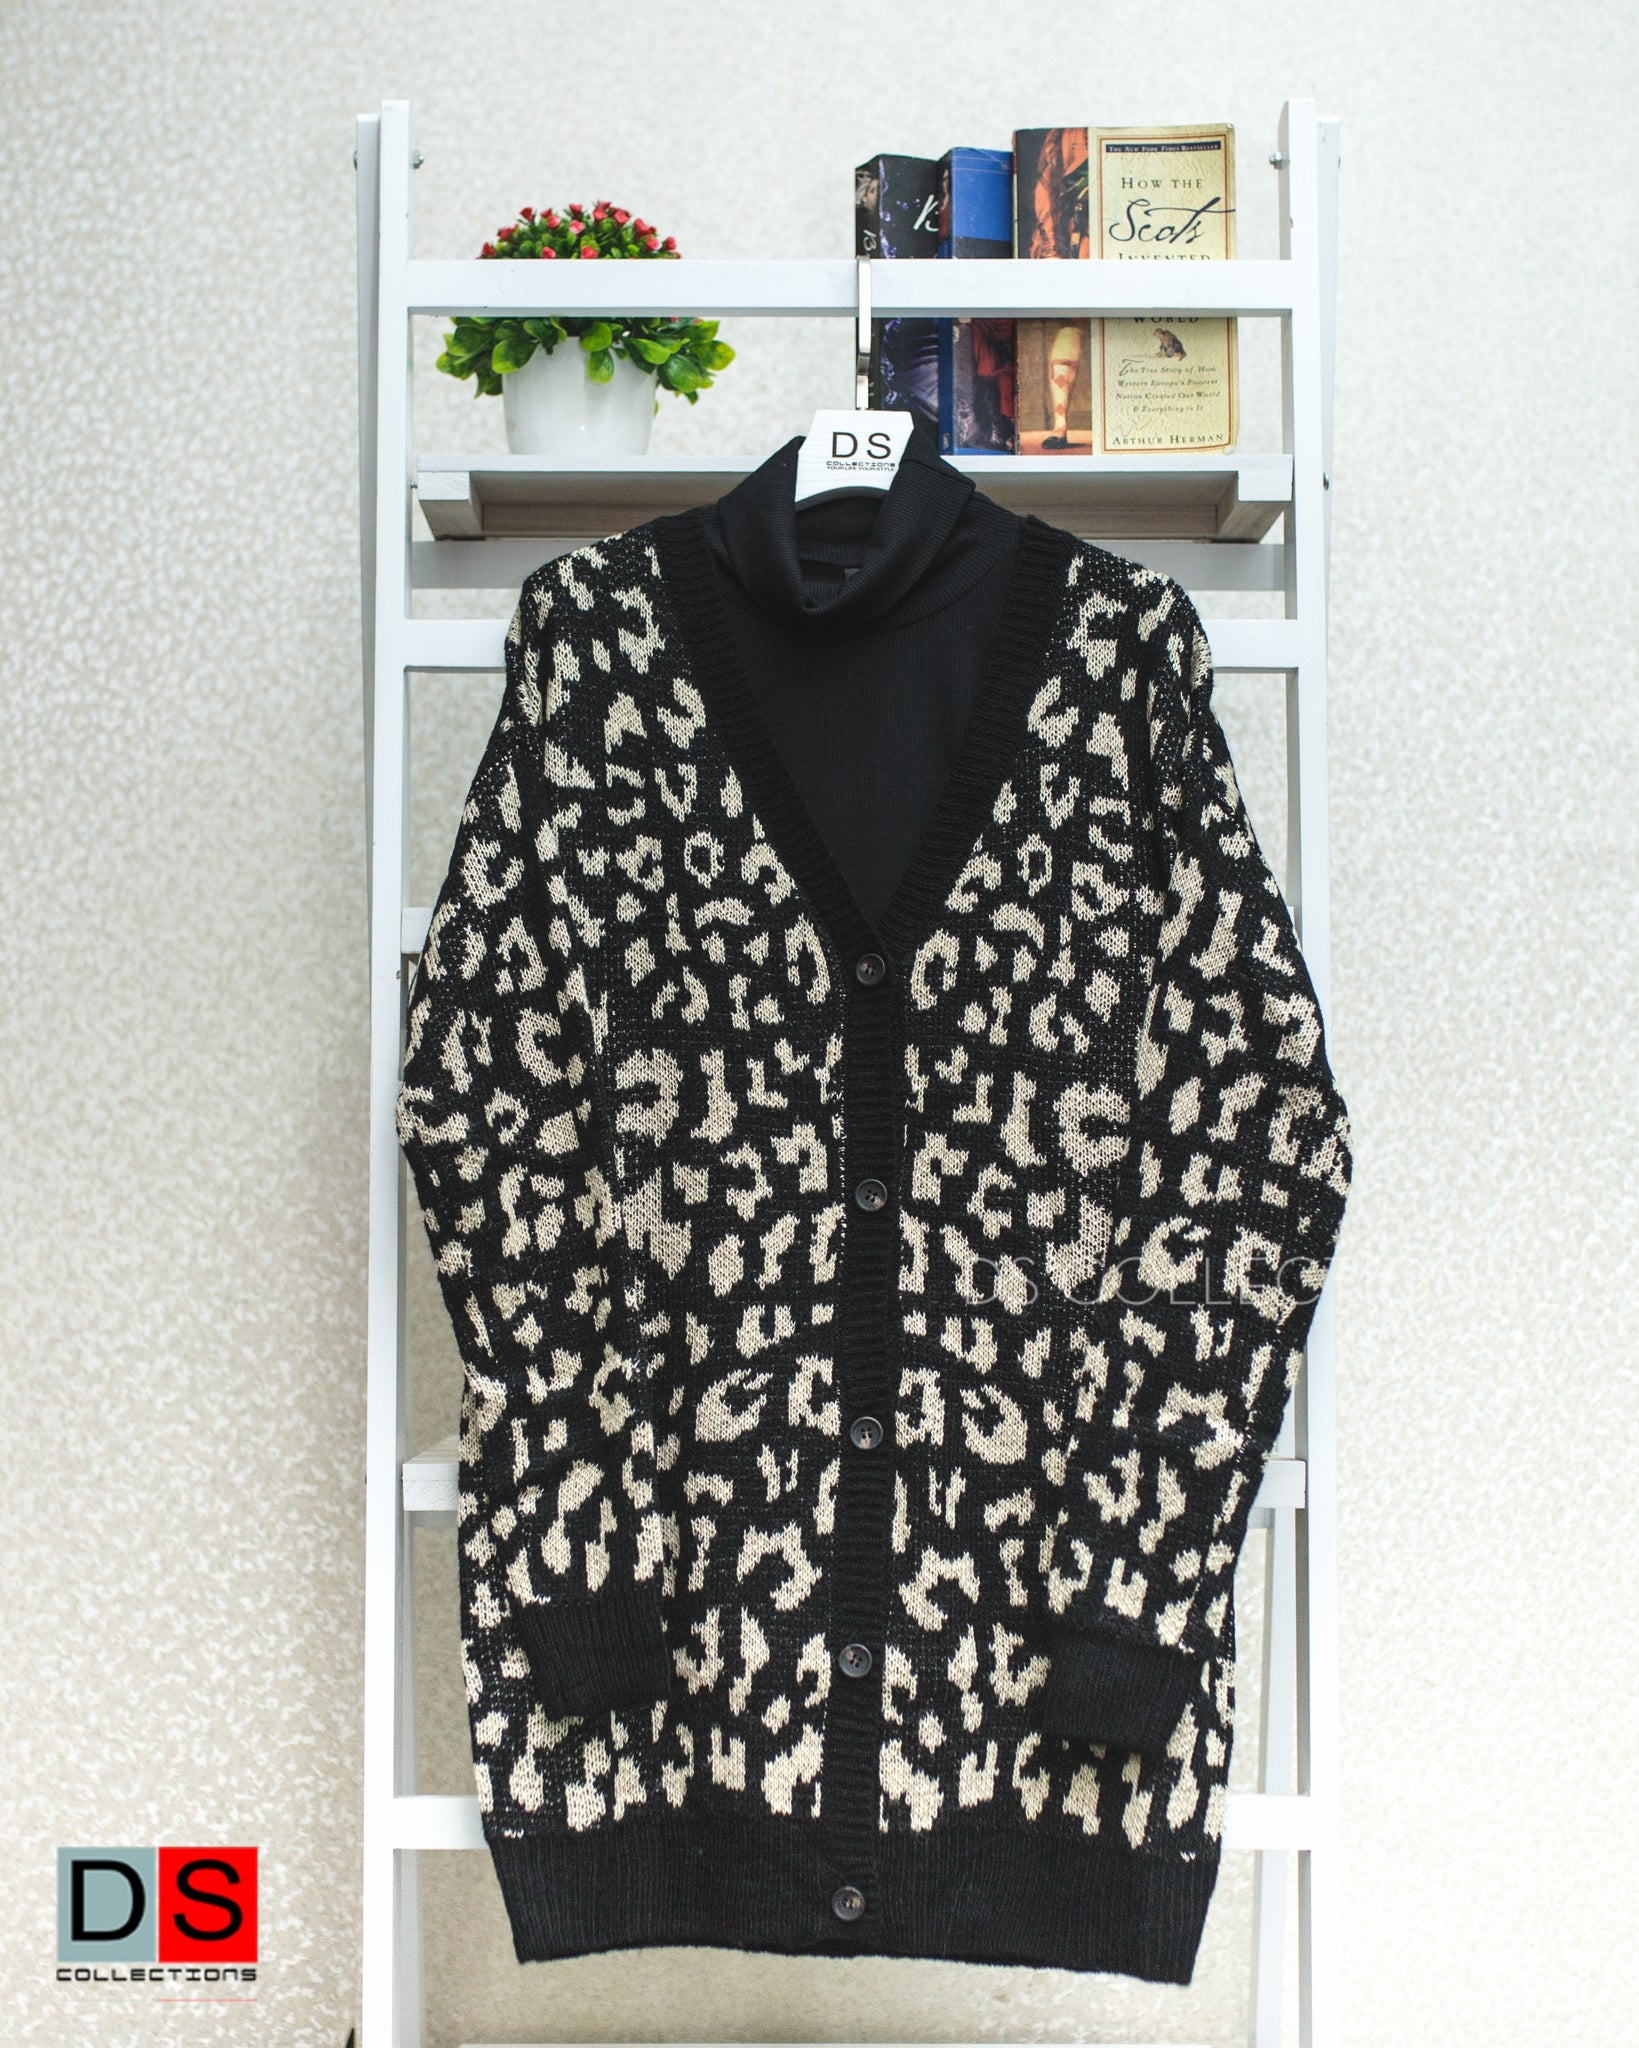 Women's Cardigan - Leopard Print Cardigan | DS Collections Nepal